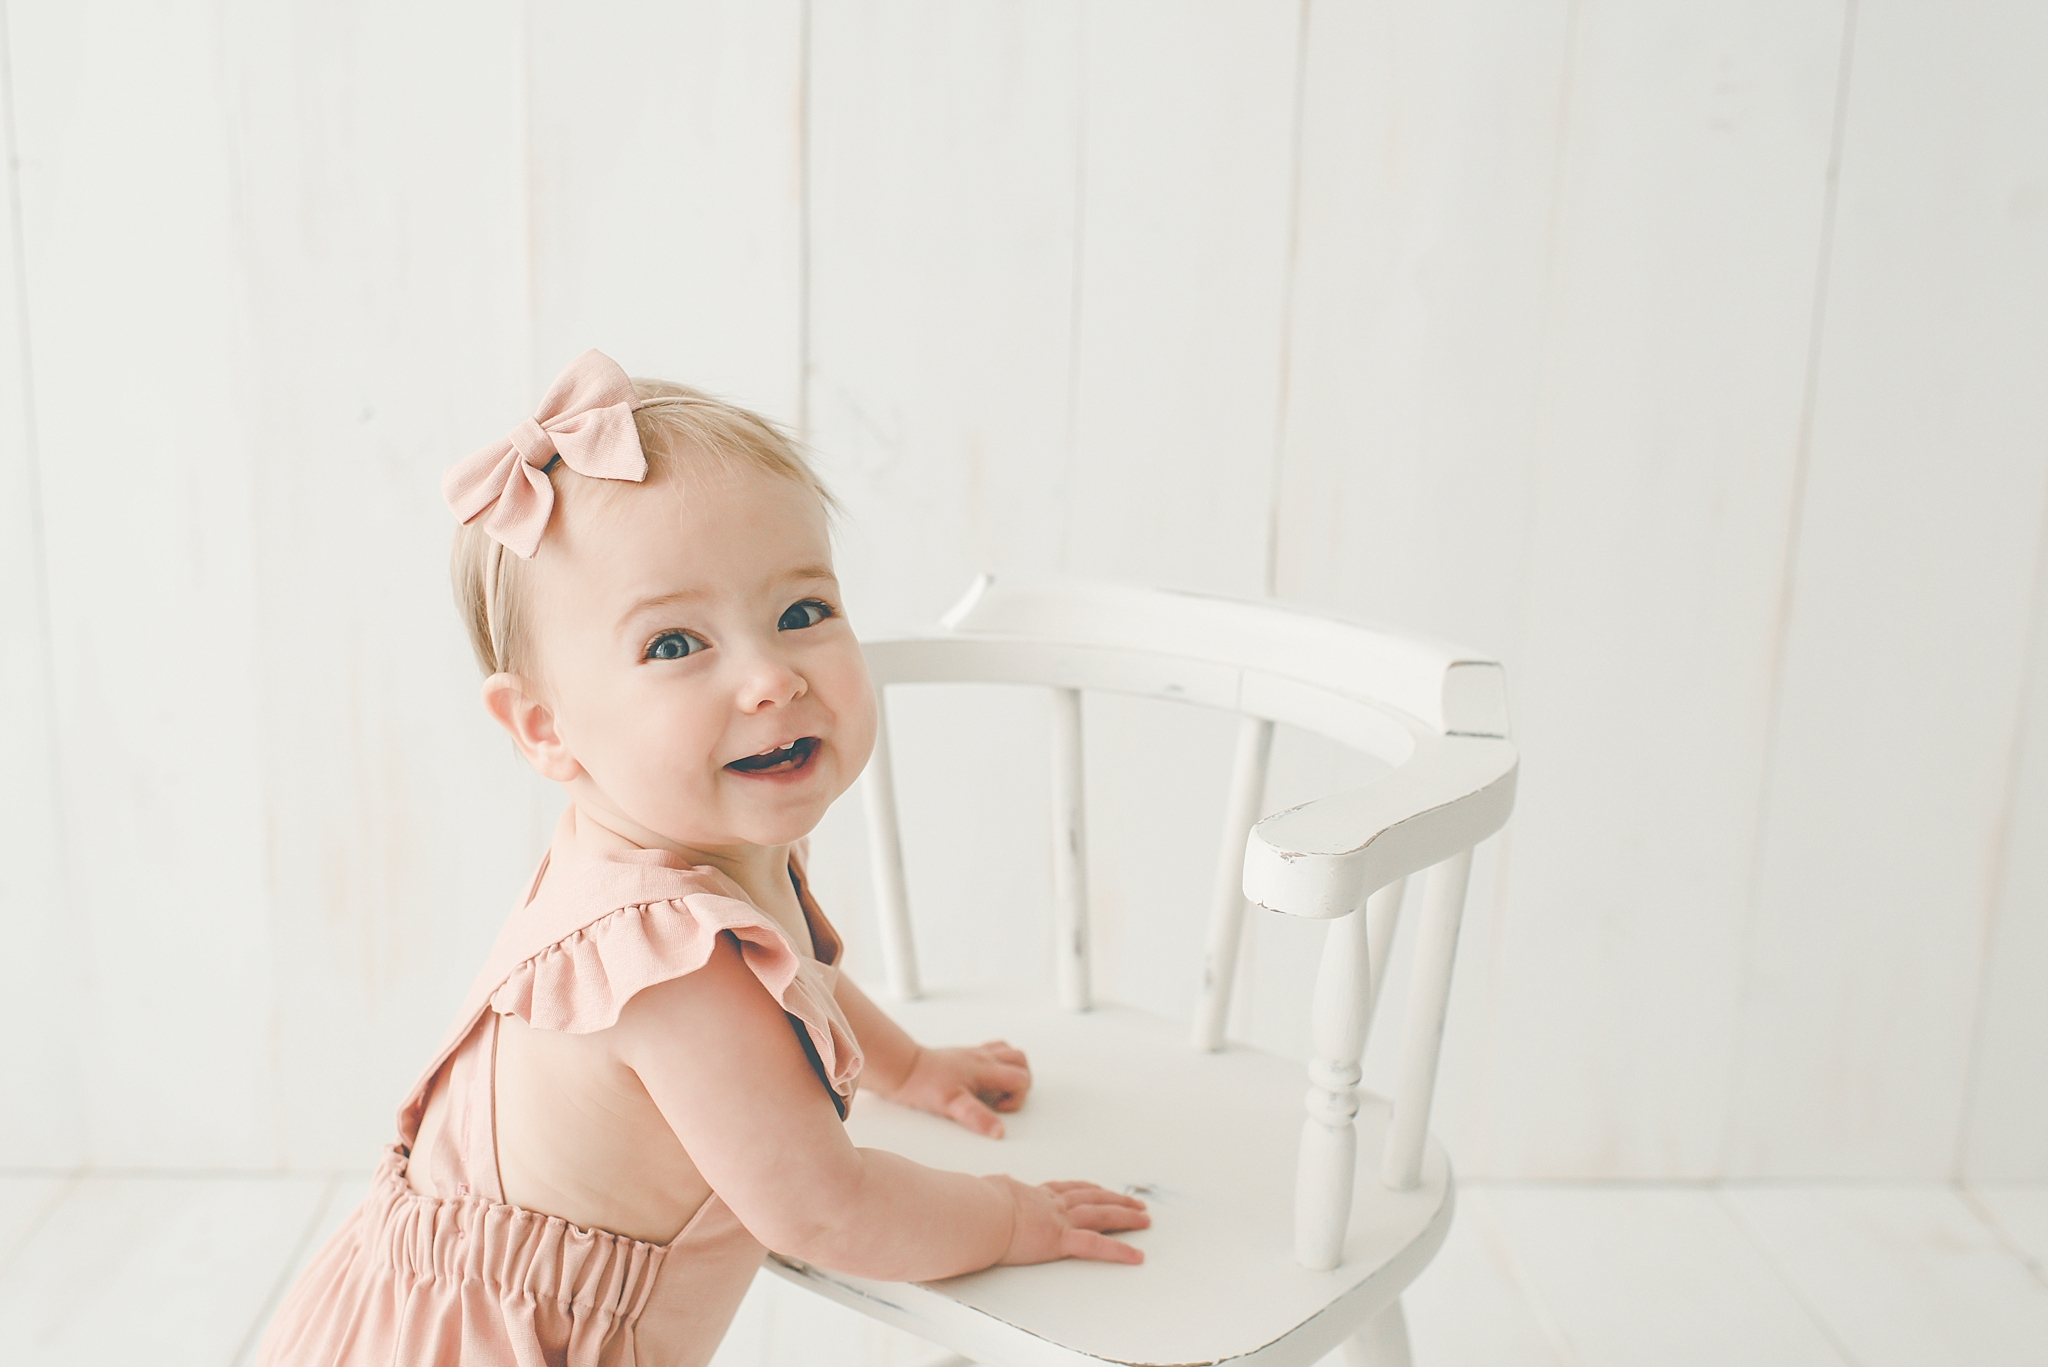 Centerville Ohio Cake Smash Photographer – Baby Amelia Turns ONE!